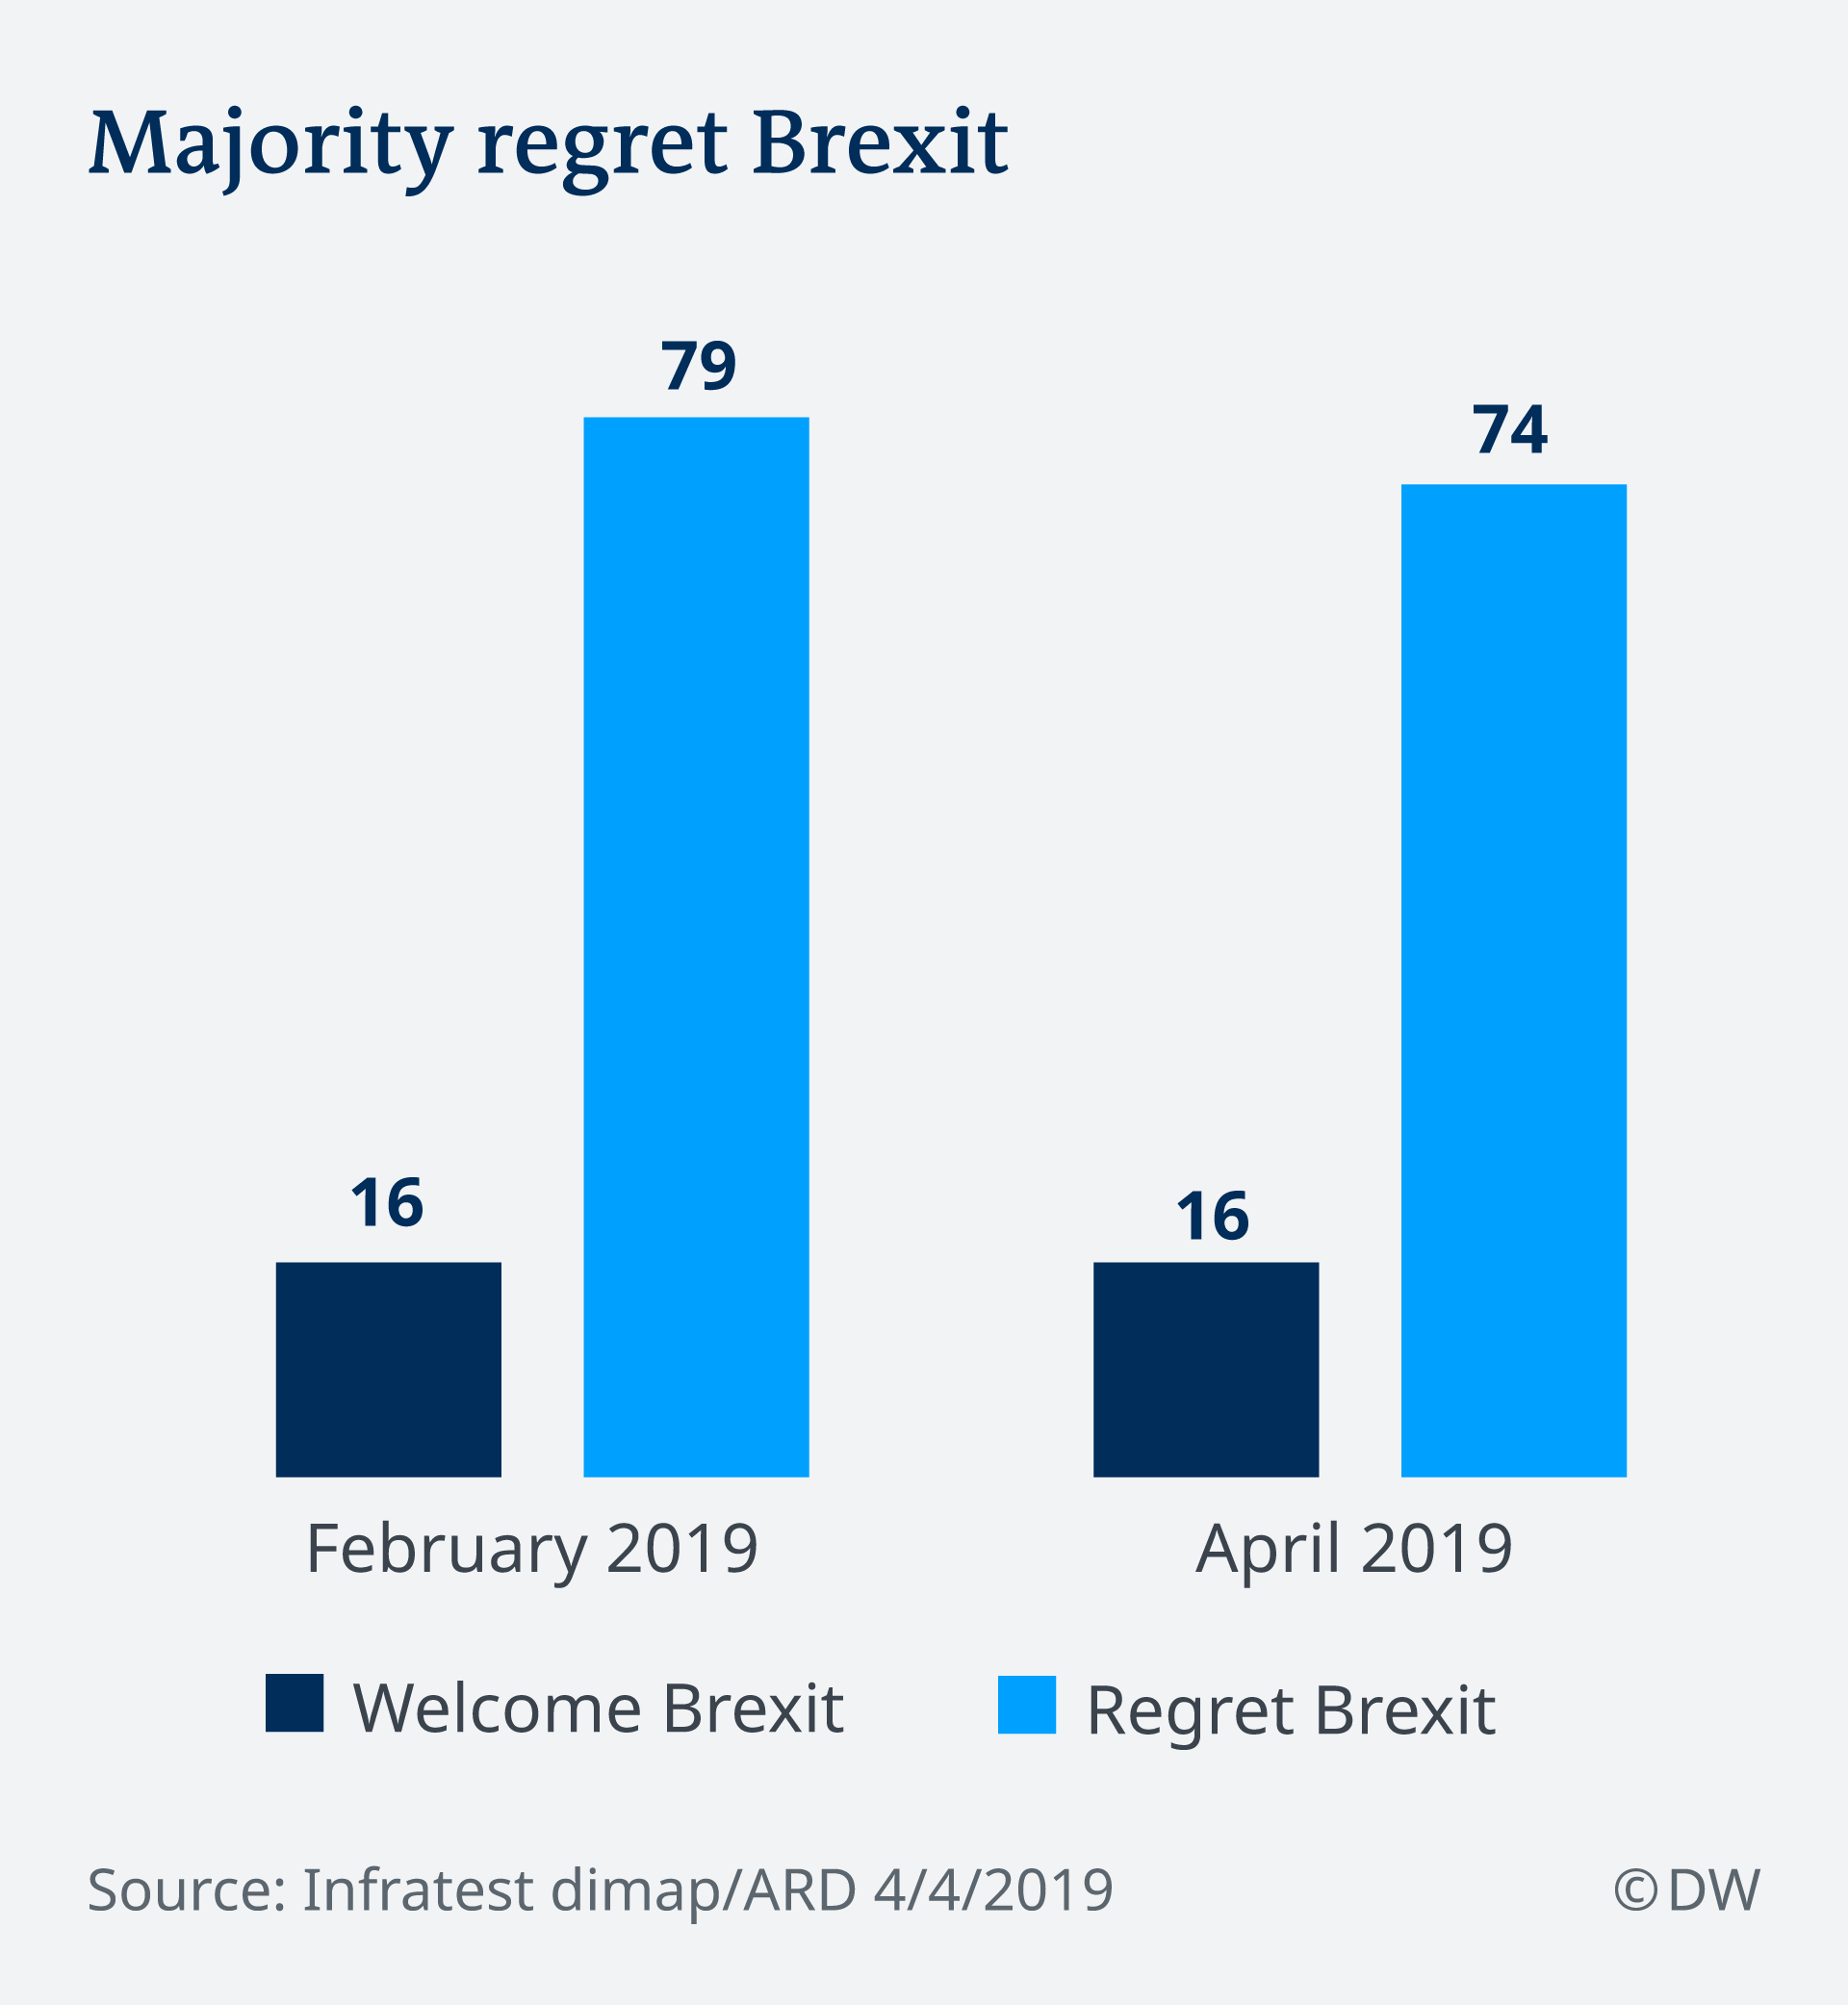 Infographic showing German sentiment towards Brexit